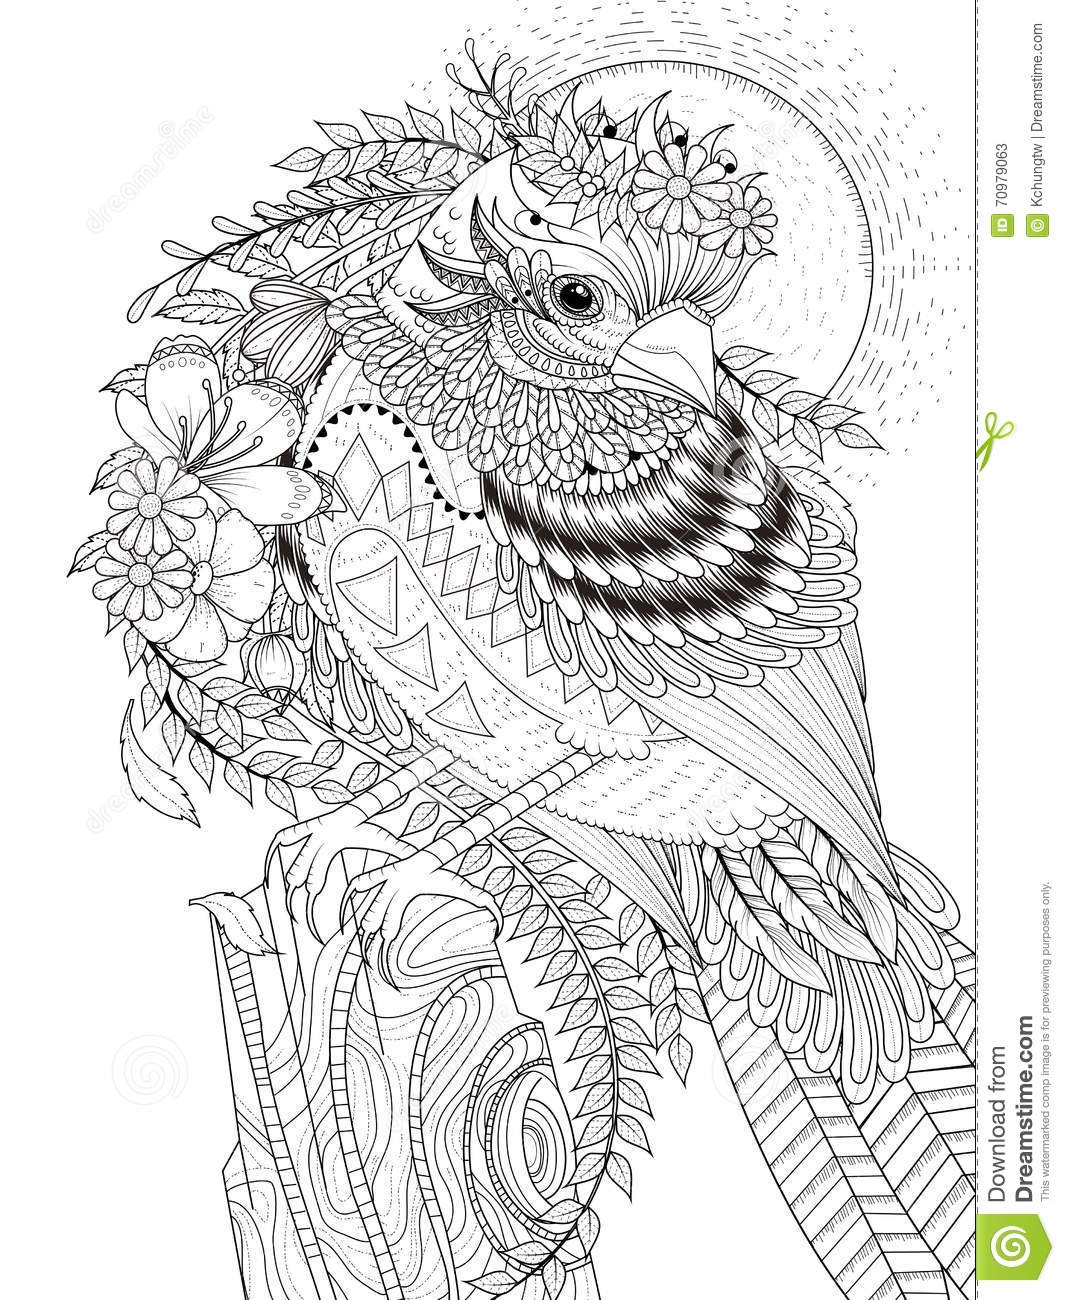 Royalty Free Illustration Download Beautiful Sparrow Adult Coloring Page